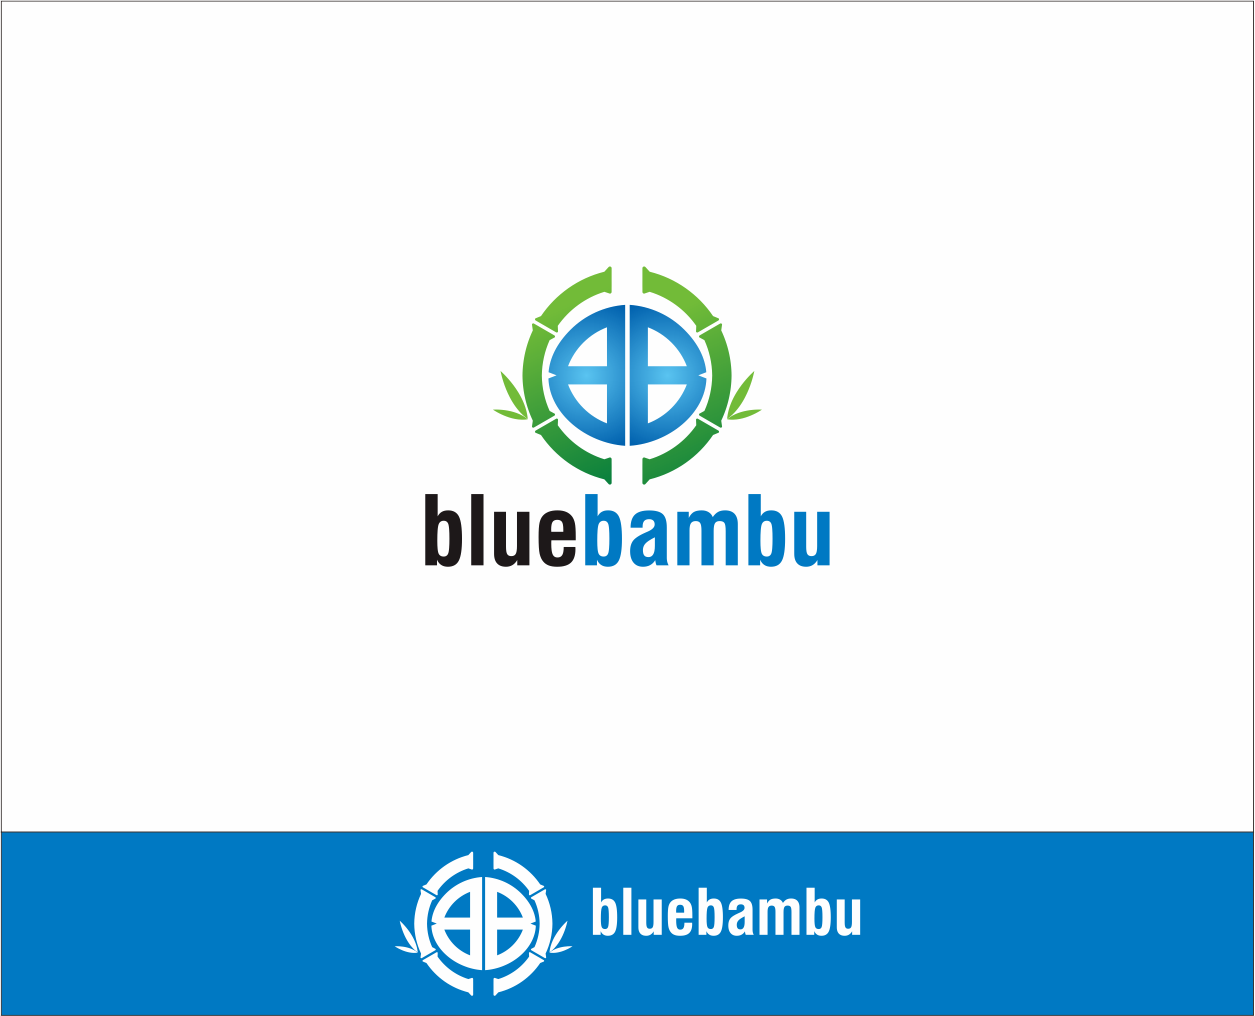 Logo Design by Armada Jamaluddin - Entry No. 91 in the Logo Design Contest New Logo Design for blubambu.